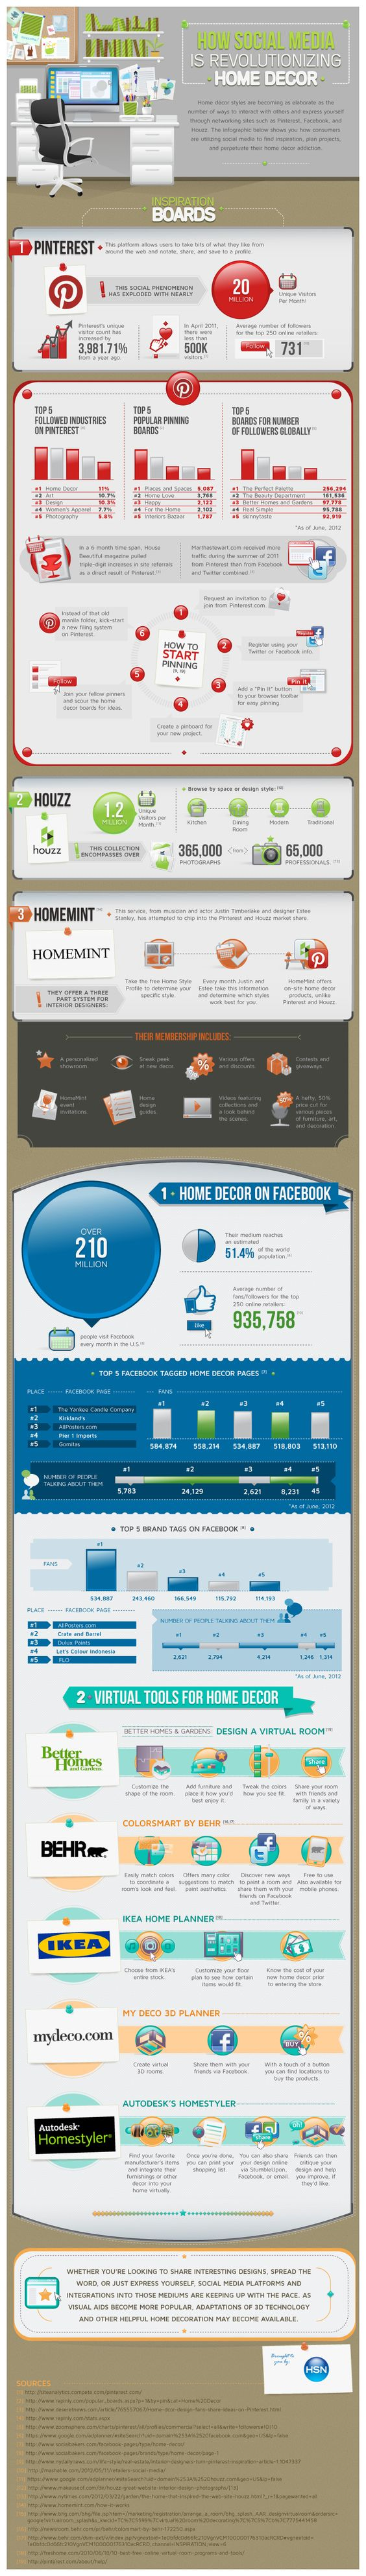 How social media is transforming home design space - #infographic from HSN Home Decor